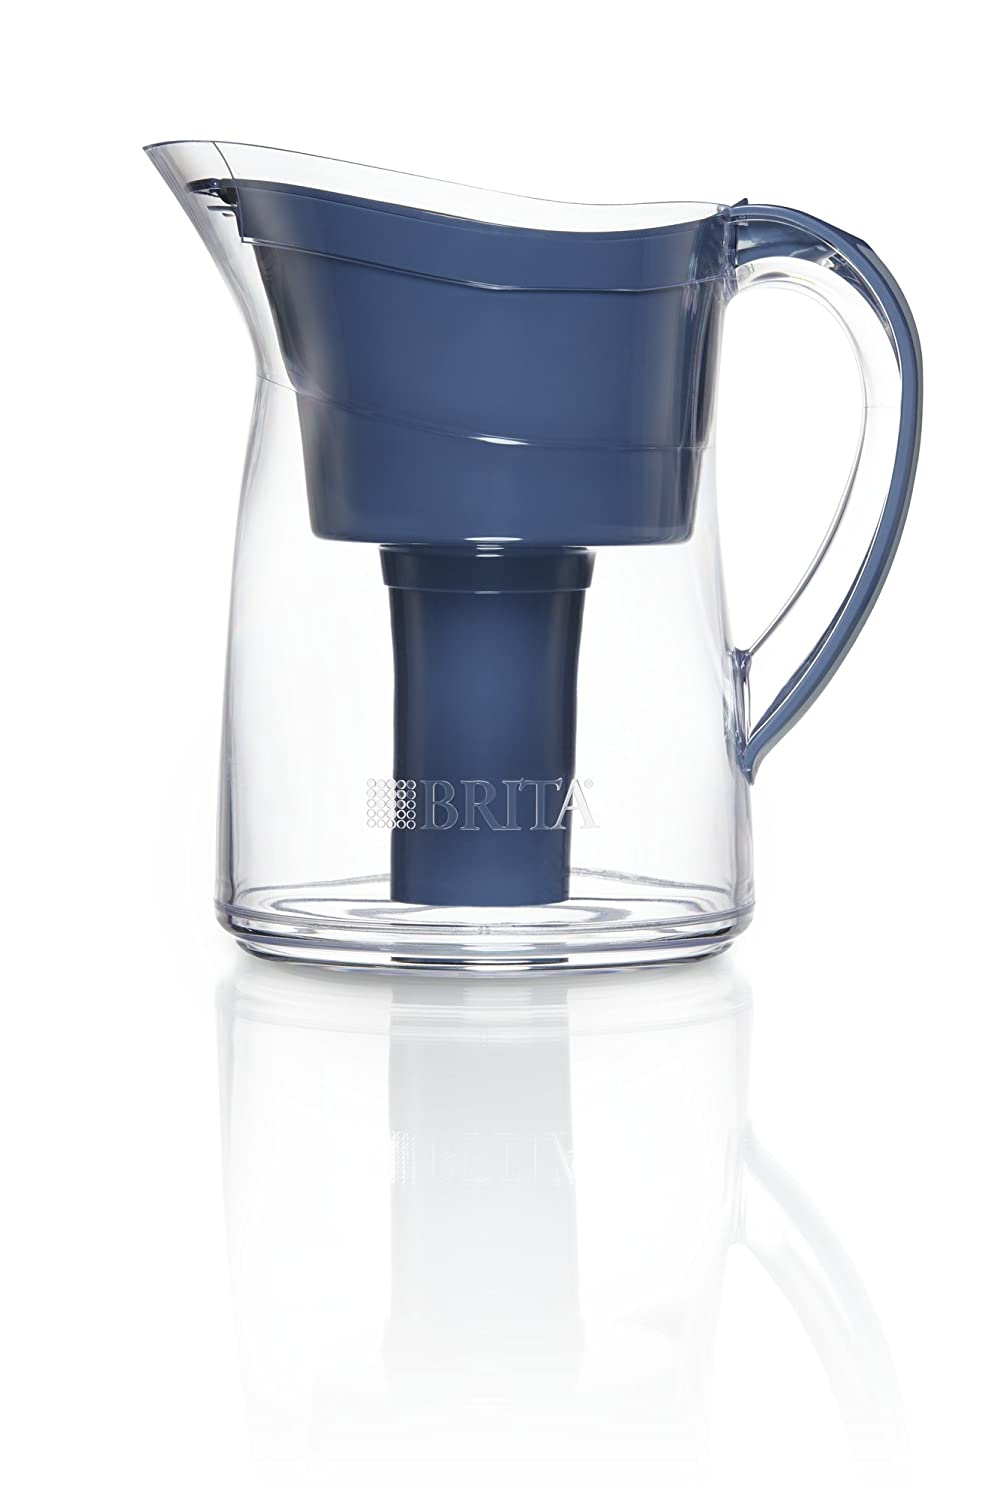 Brita Mini Plus Water Filter Pitcher with 1 Replacement Filter, Turquoise, 6 Cup 636101